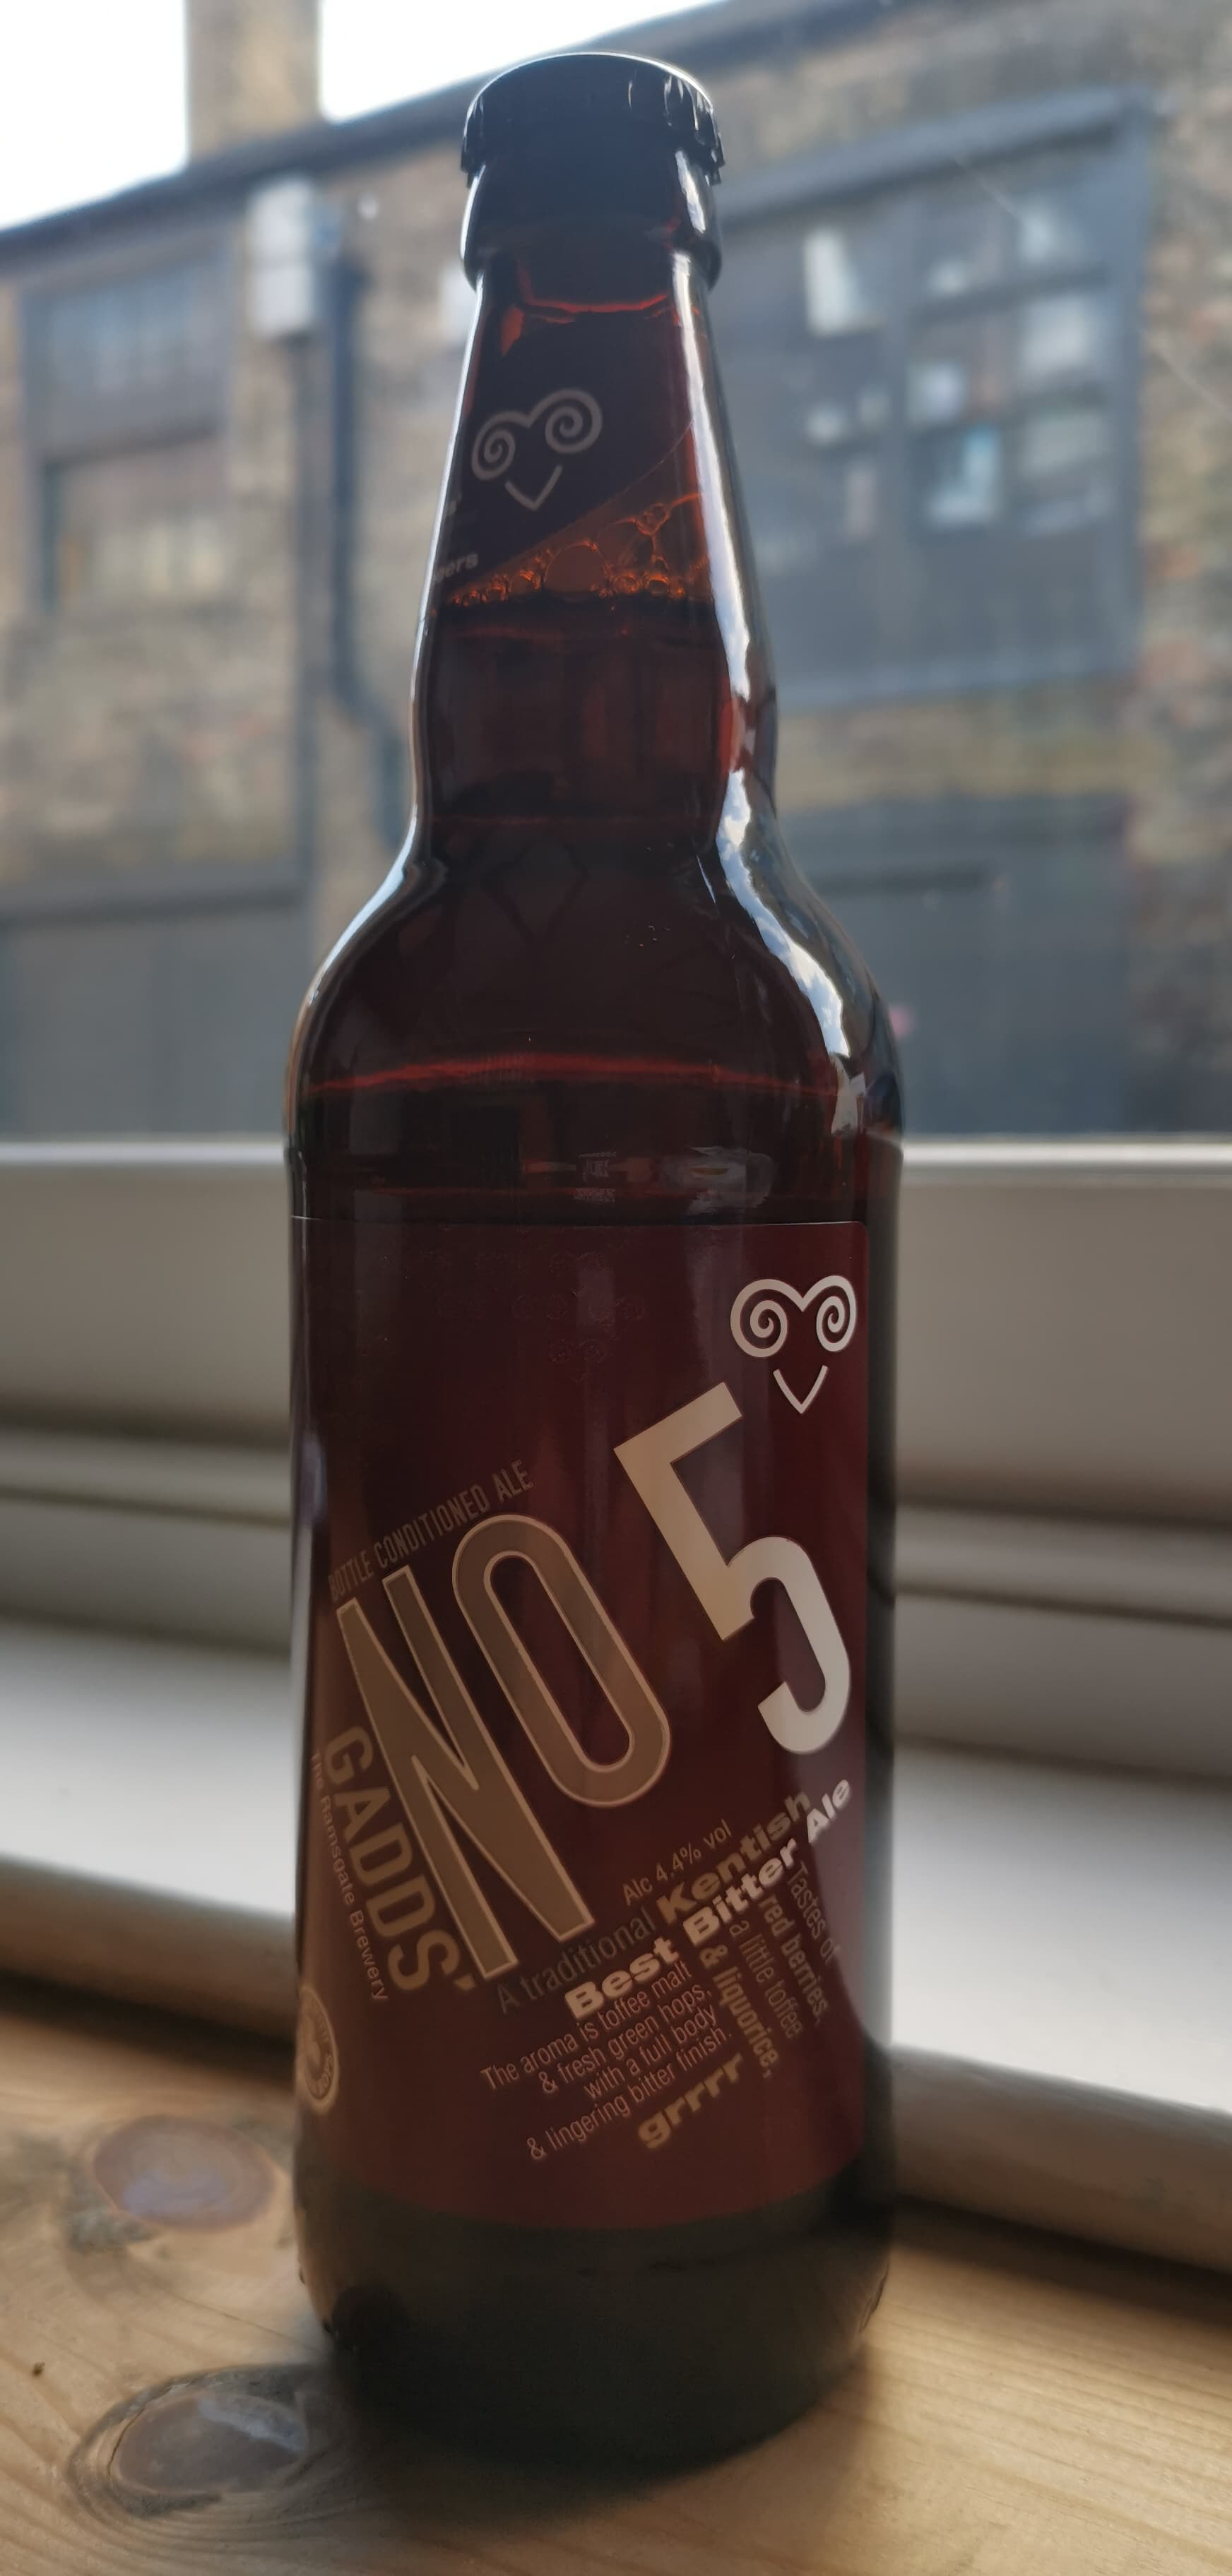 Gadds' - No 5 (4.4% Best Bitter Ale) (The Ramsgate Brewery)